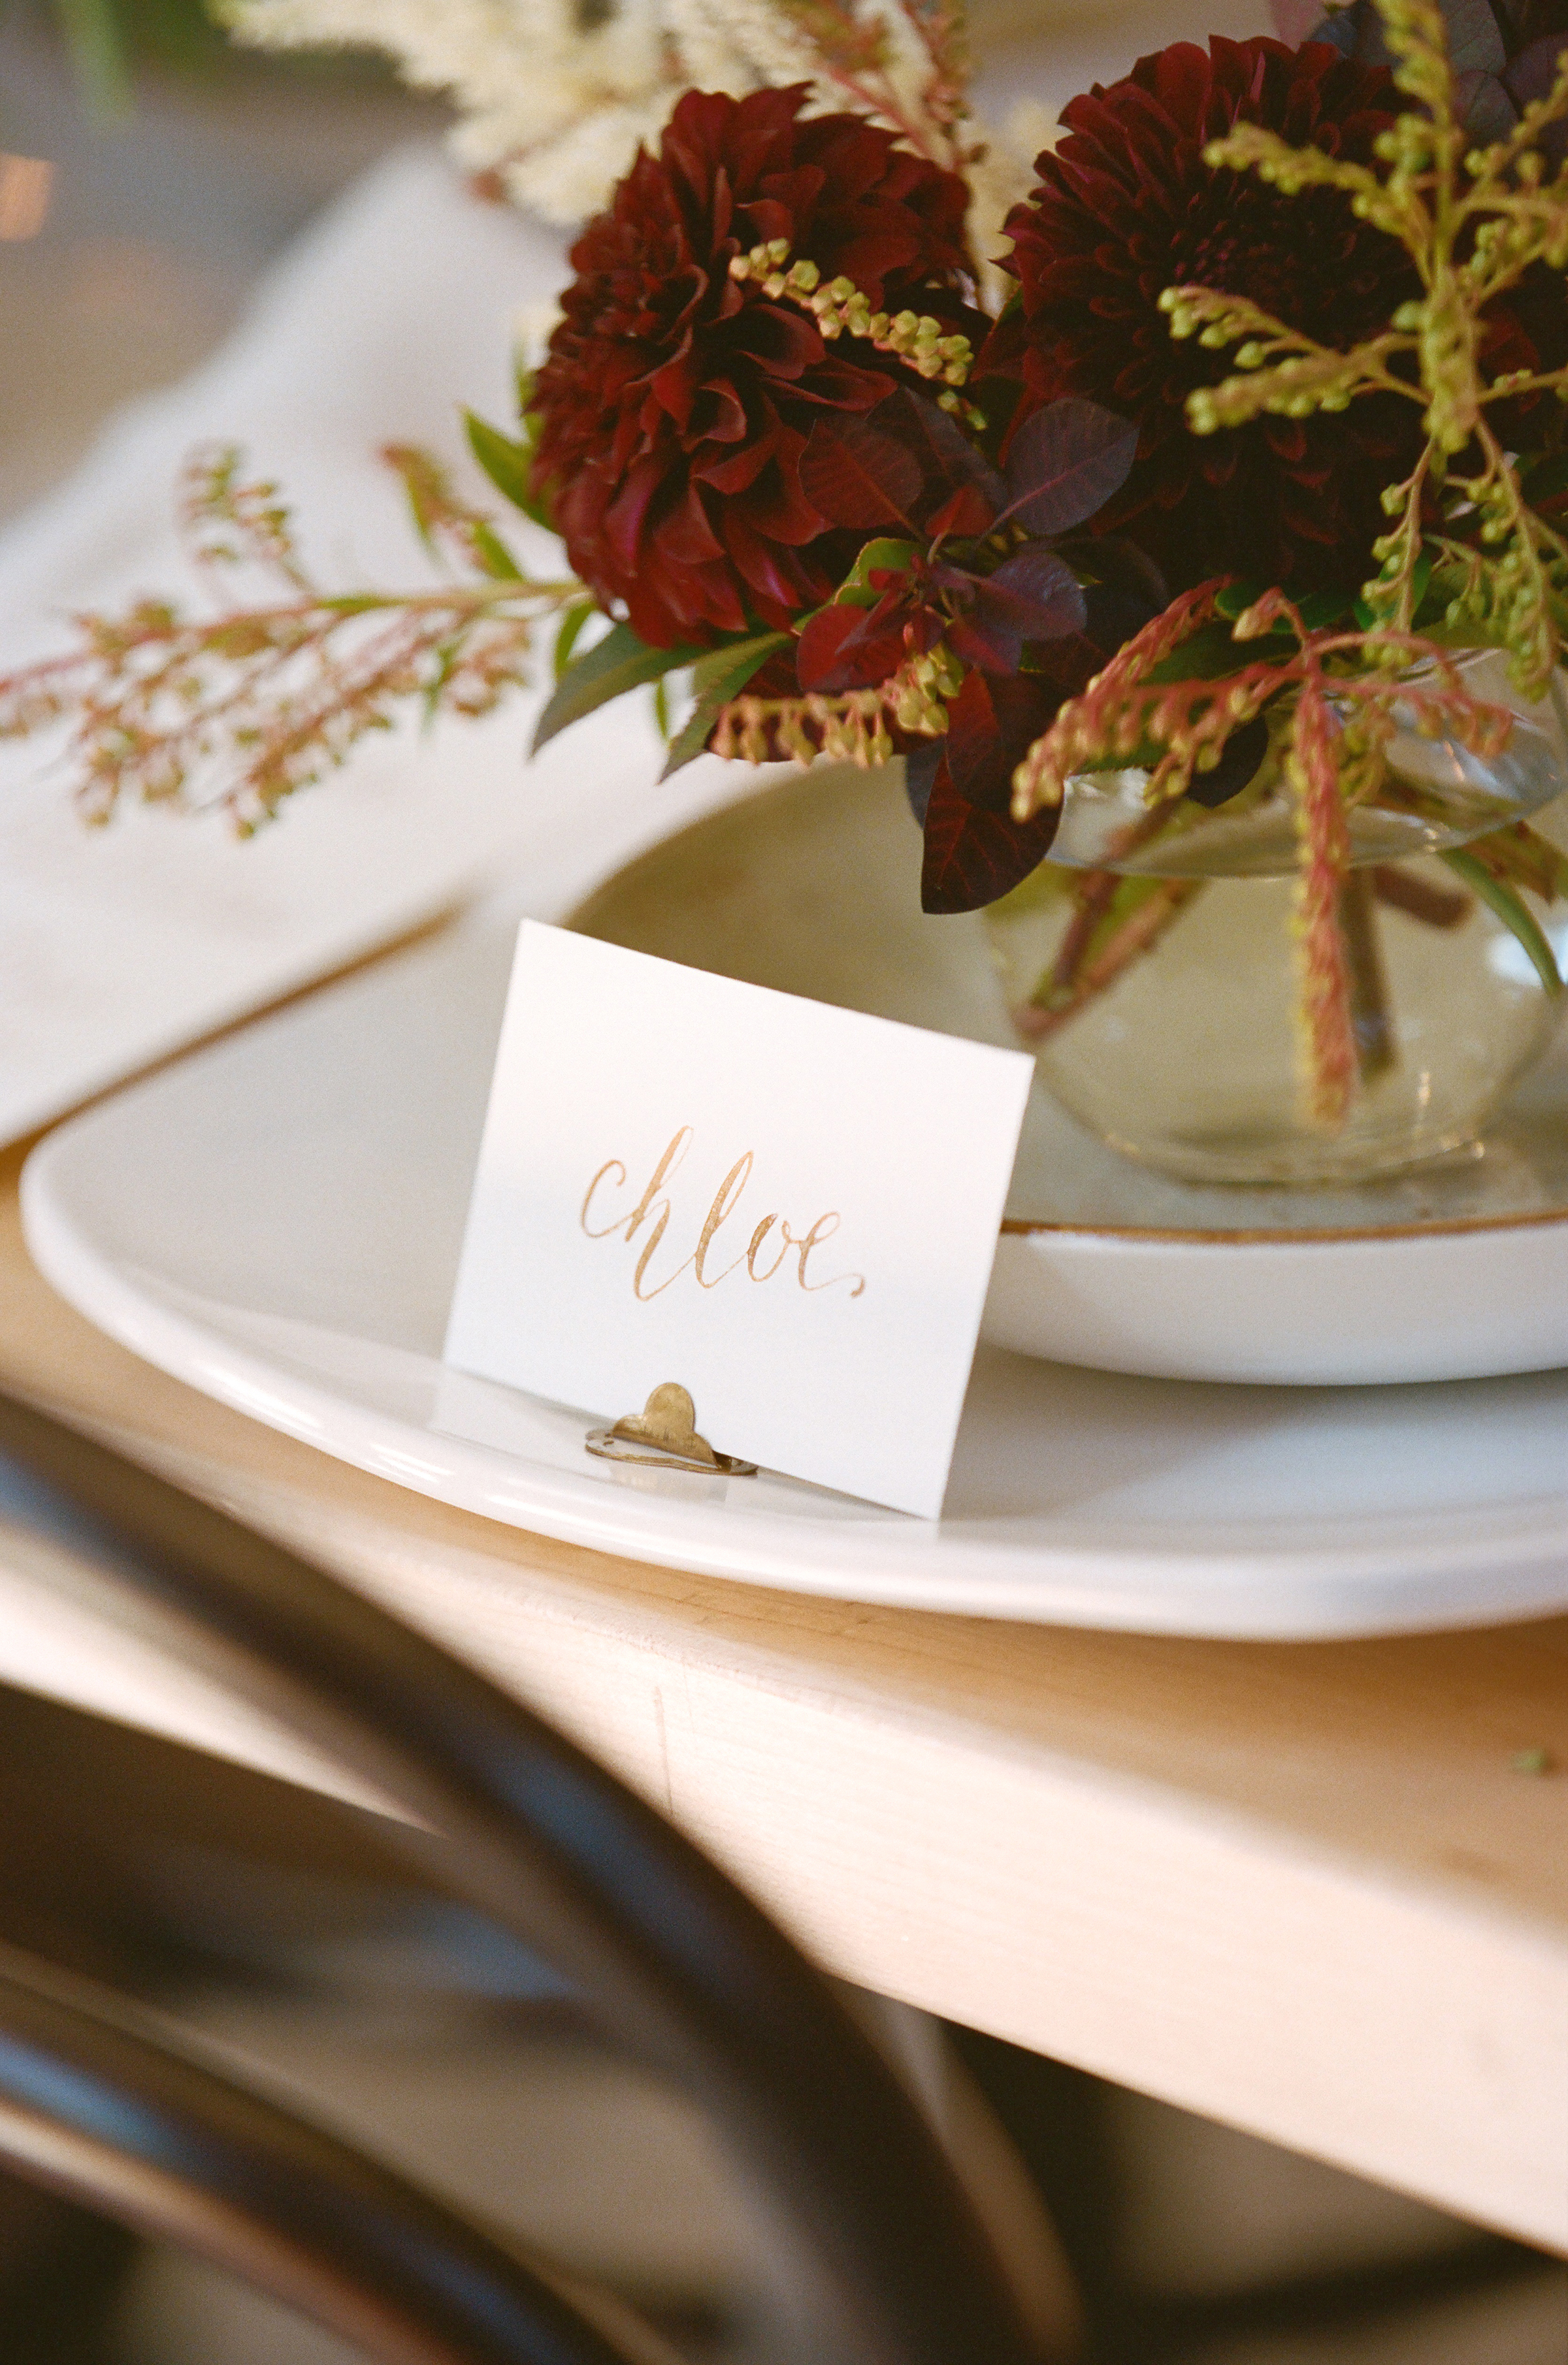 An awesome DIY for weddings - a complete calligraphy tablescape! {From Melina Wallish Photography, Dax Victorino Films, and BoxwoodAvenue.com}